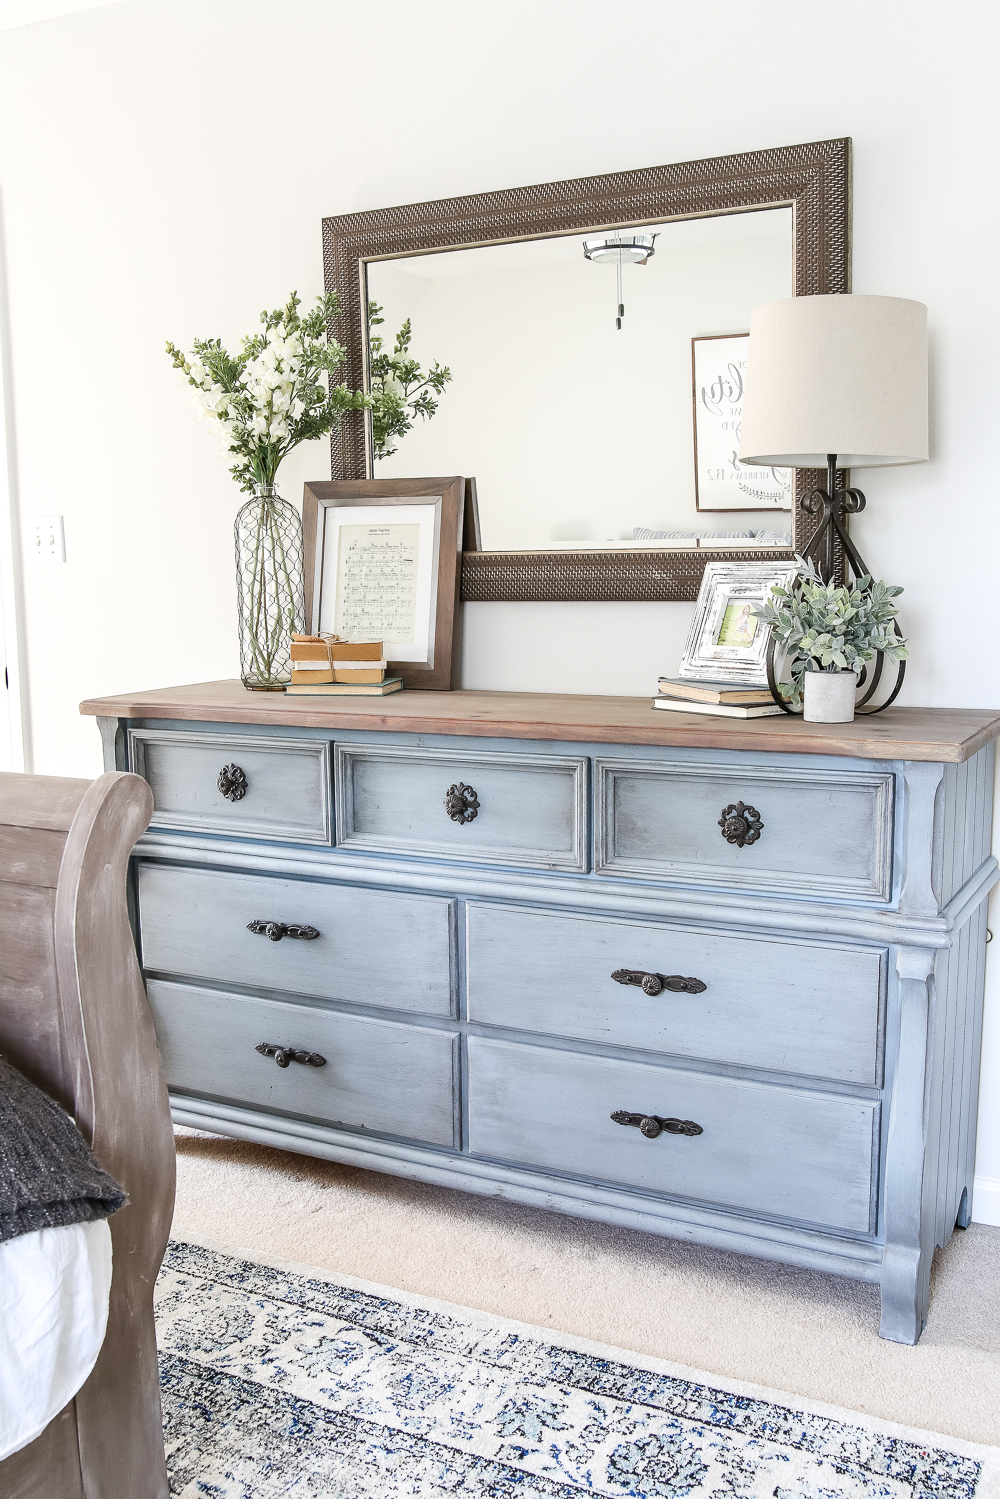 Add A Pop Of Color With Farmhouse Style The Cottage Market